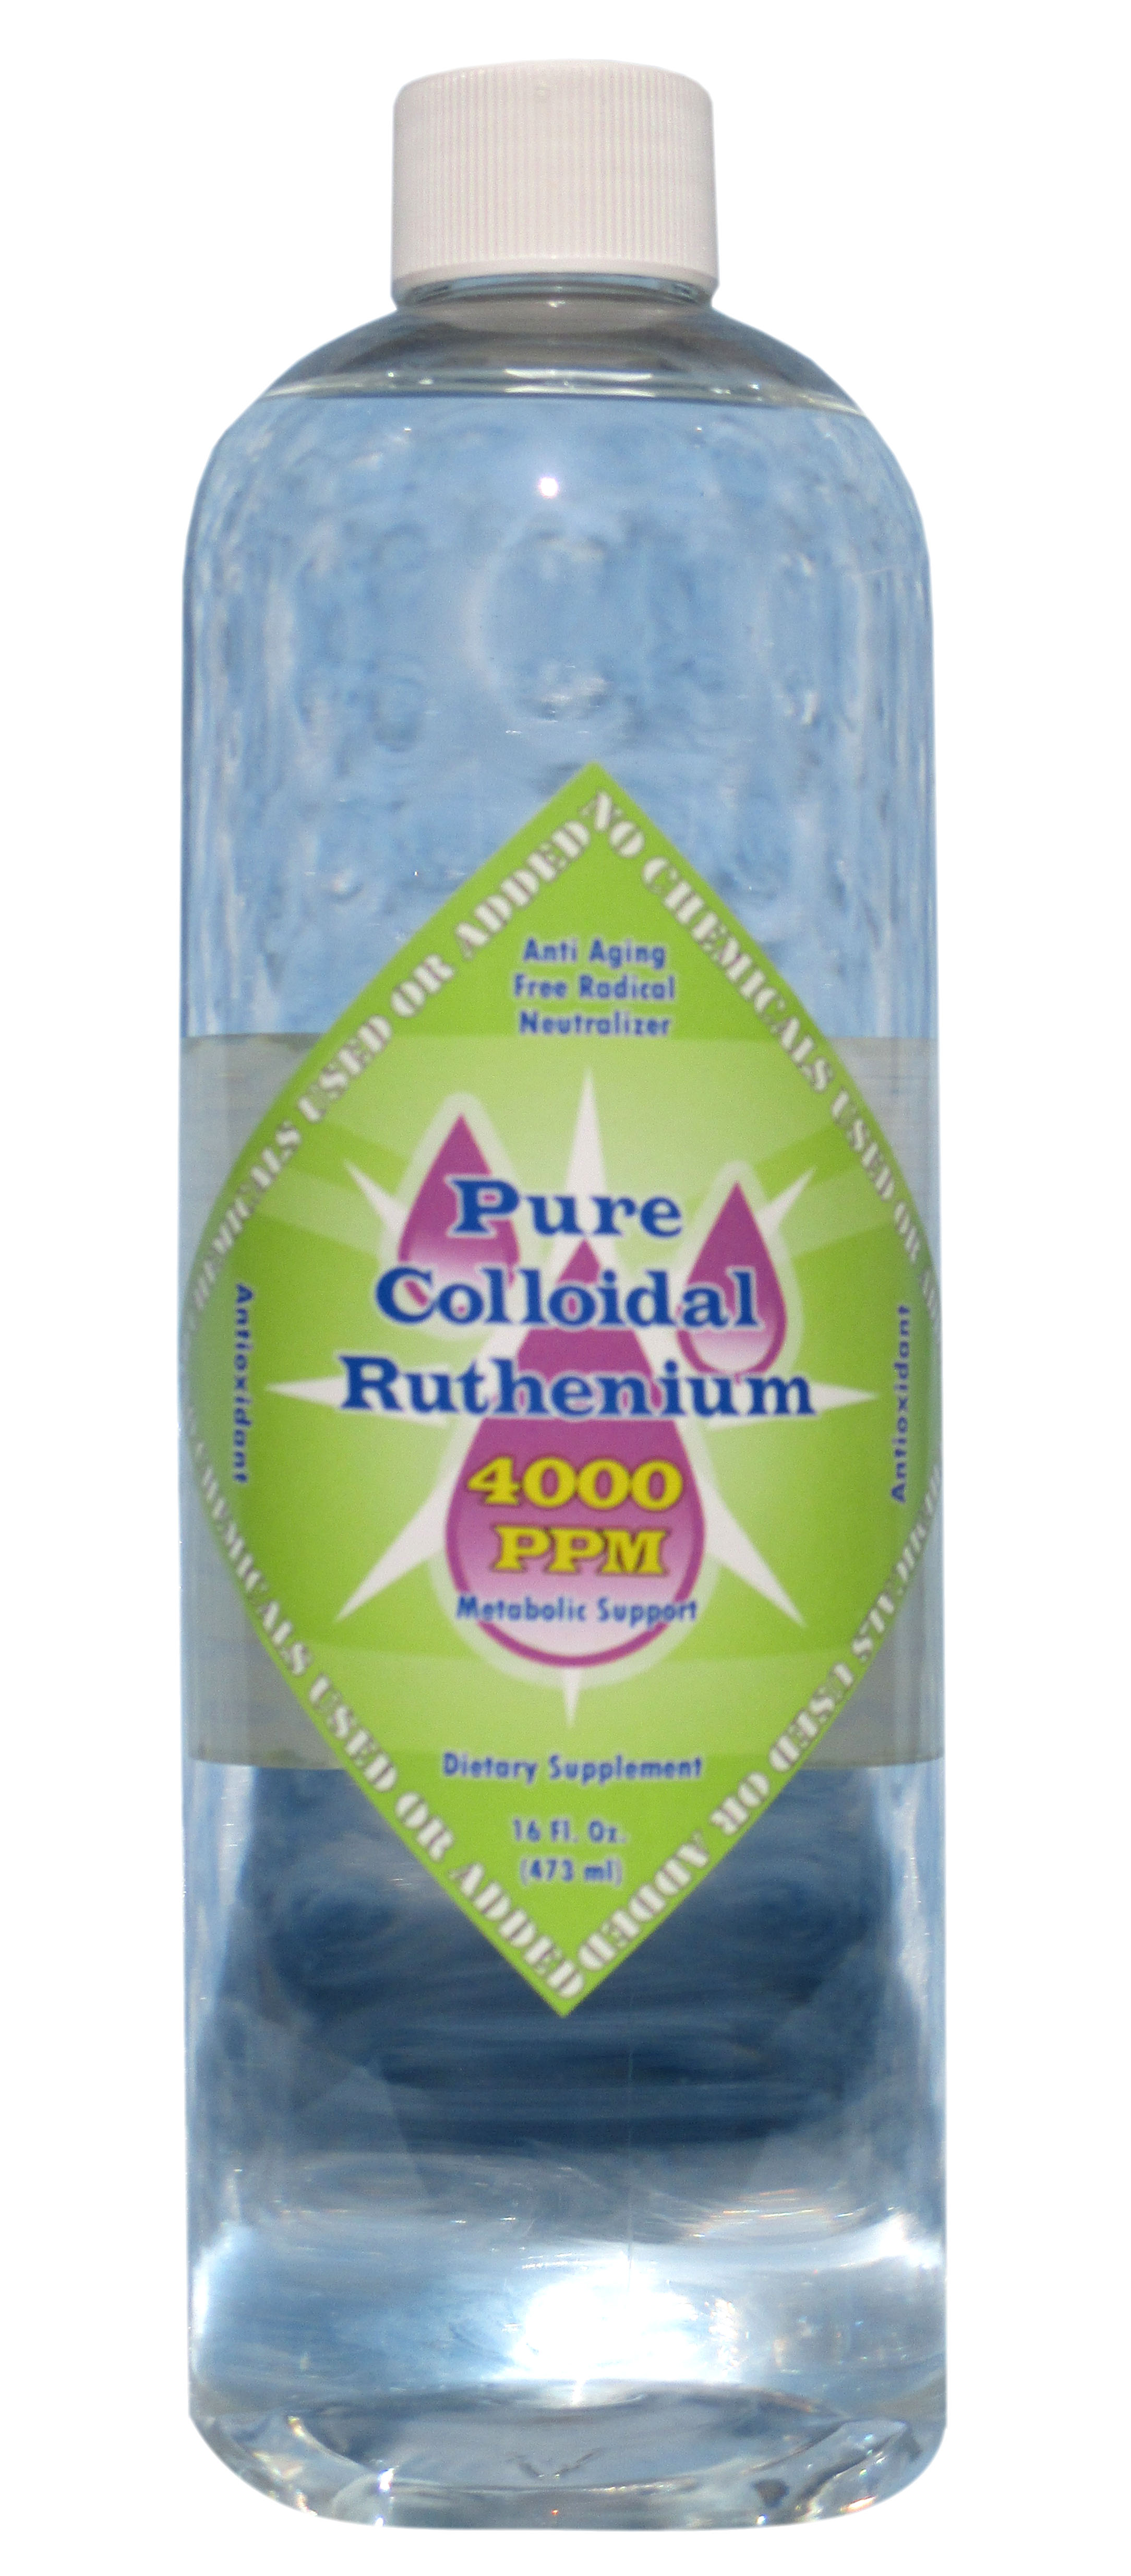 Colloidal Ruthenium 4000 PPM 16 Oz Bottle